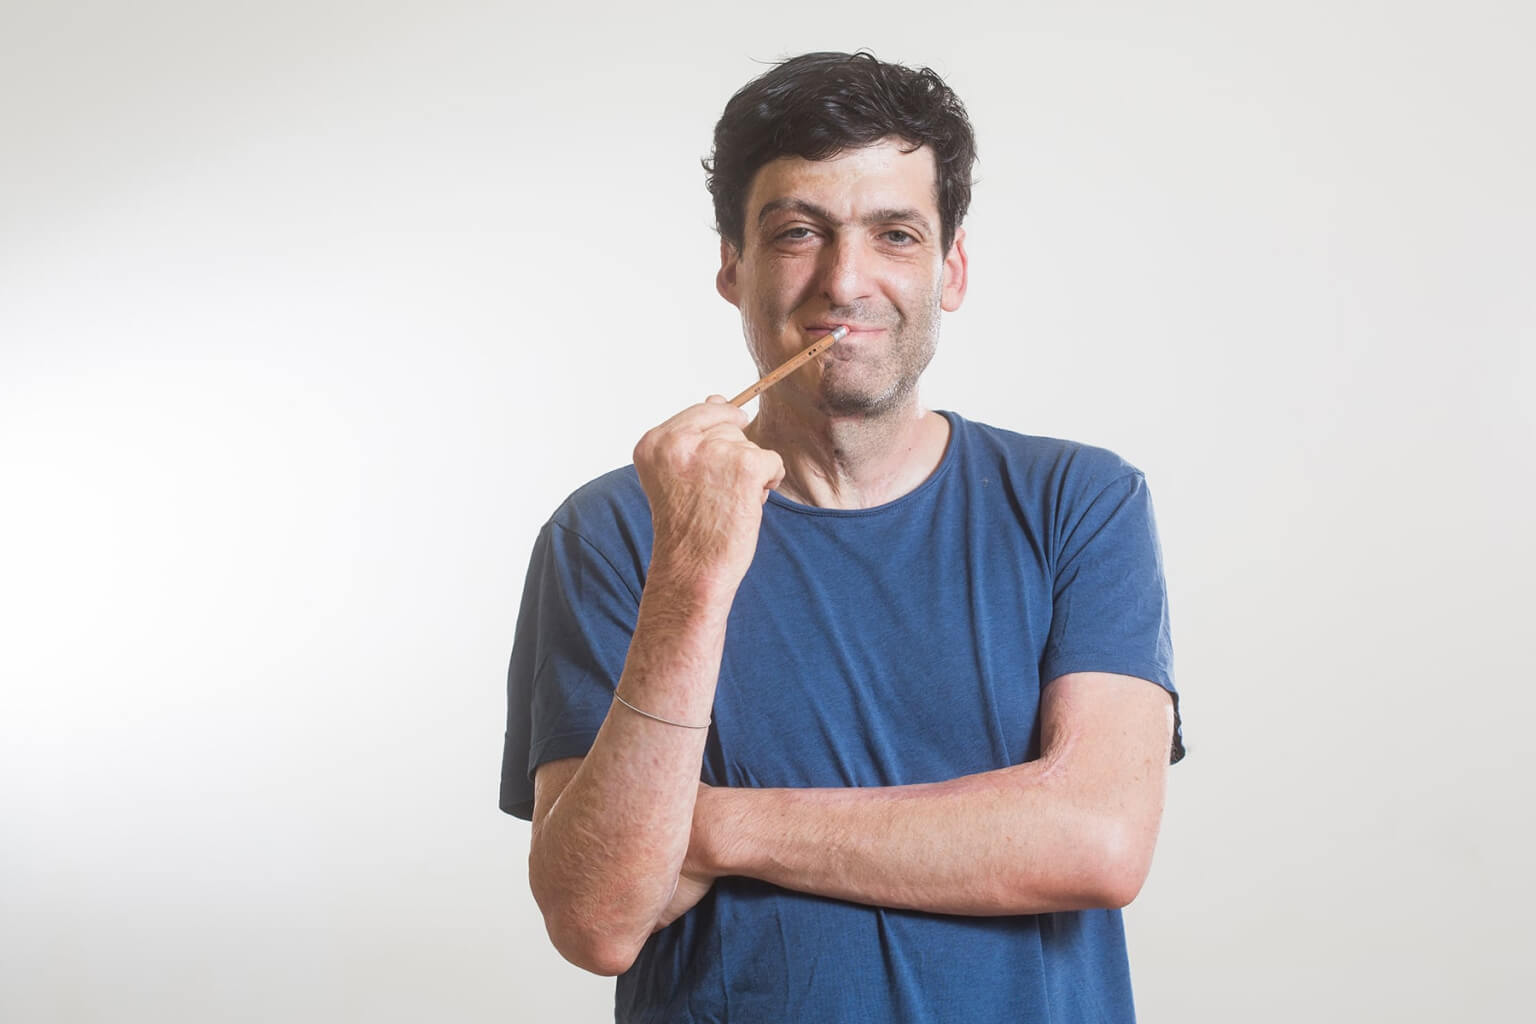 Habits and Routines of Psychology Professor and Behavioral Economist Dan Ariely